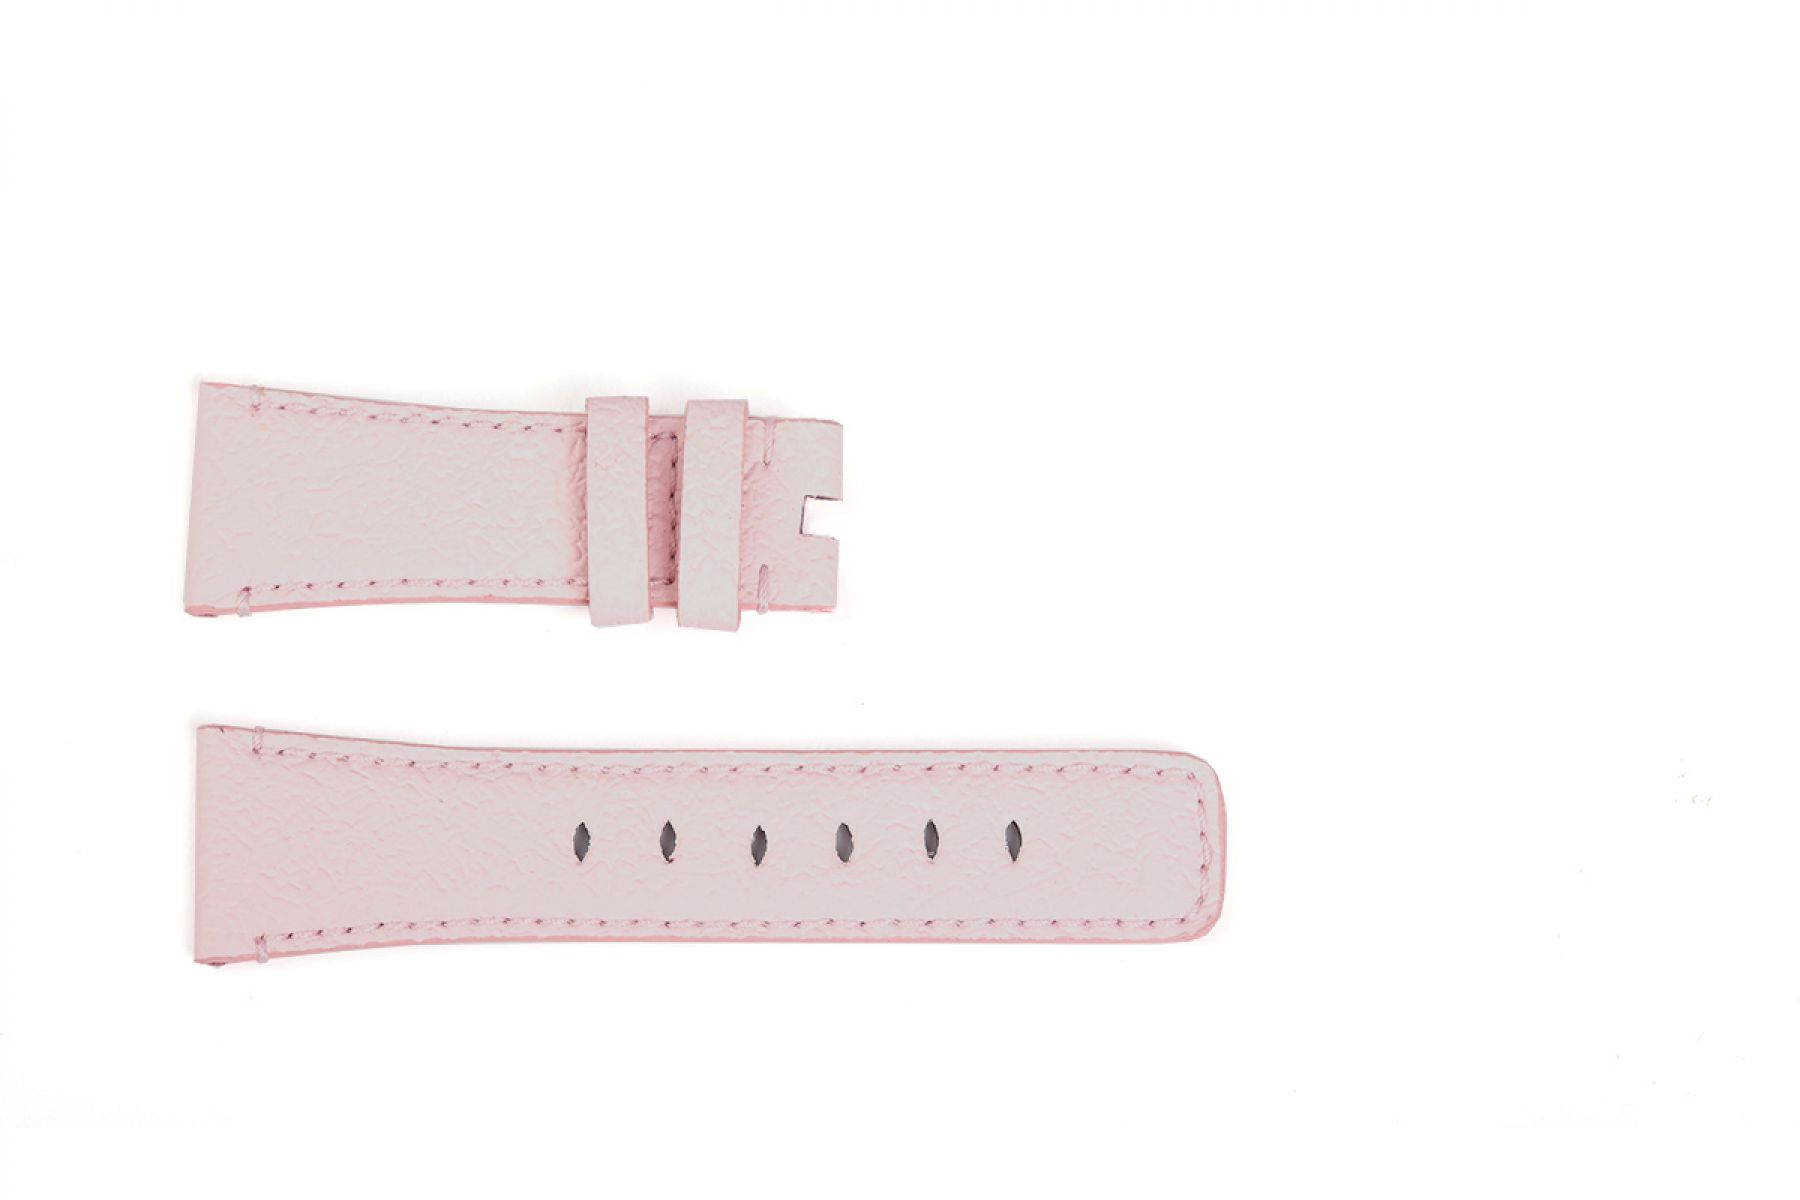 Band for Tiny Wrist (Apple Watch 38mm, 40mm) in FLAMINGO PINK Textured Vegan Leather. Kids Collection